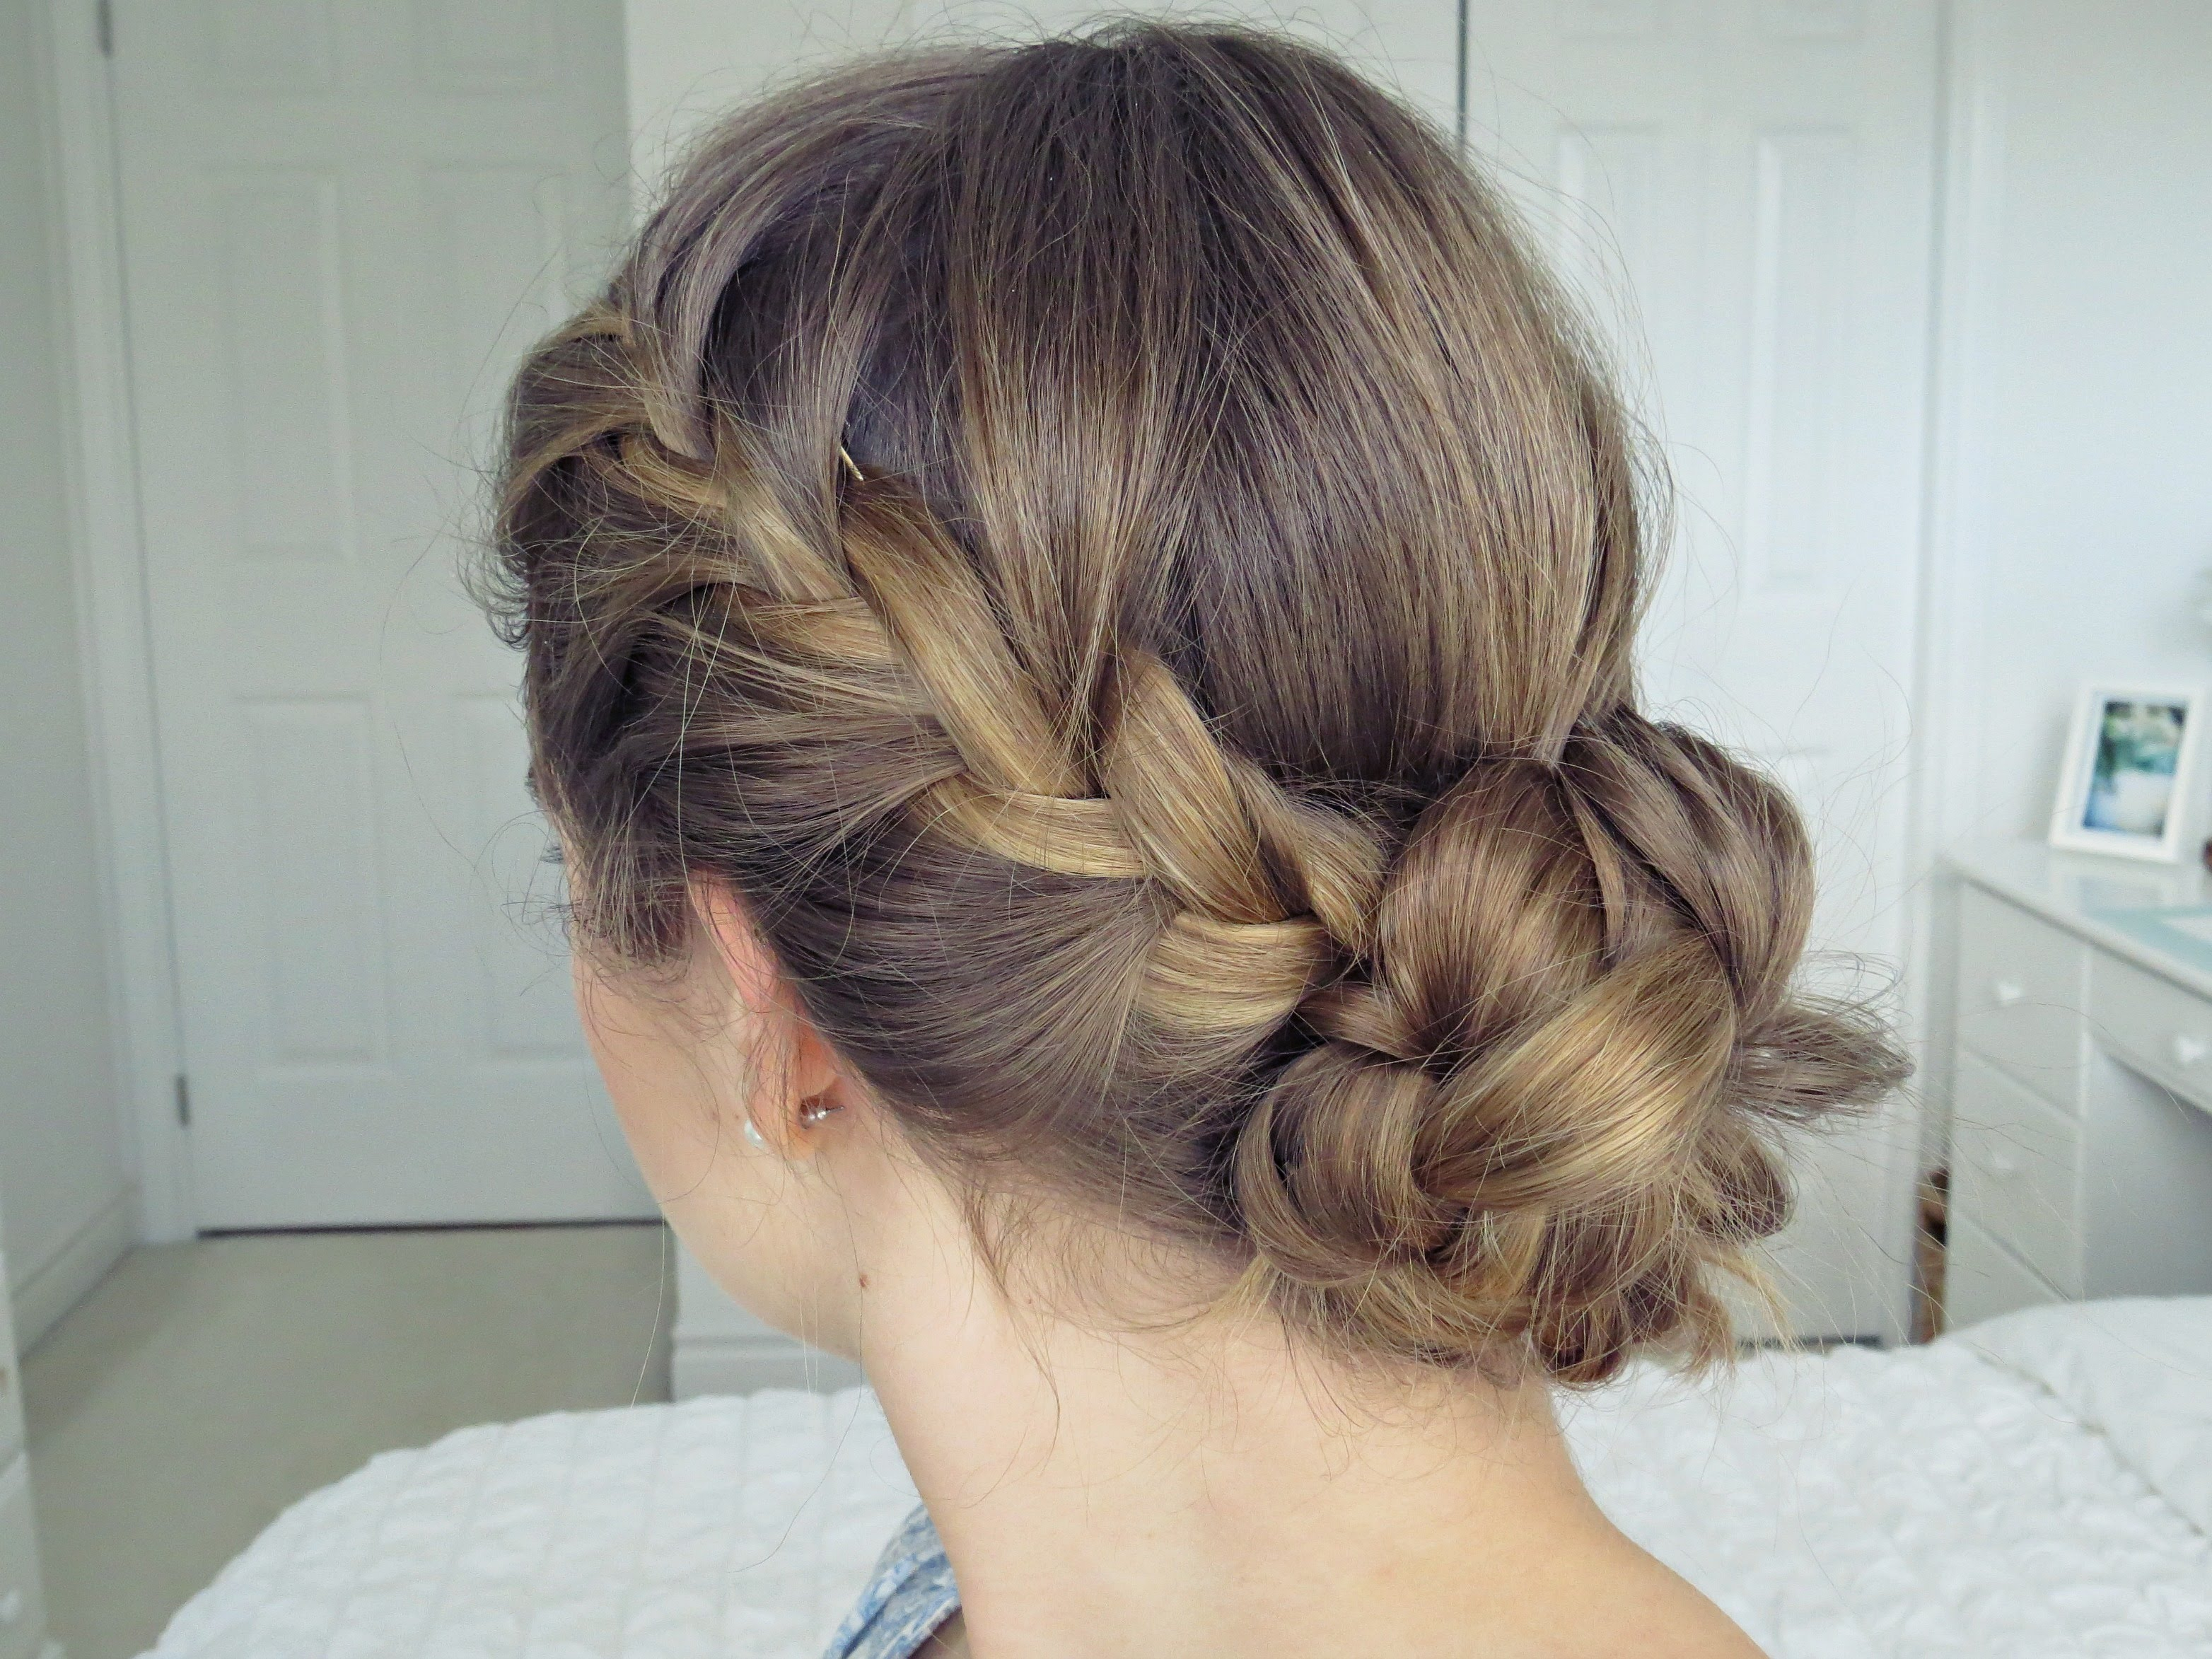 Boho braid bun tutorial